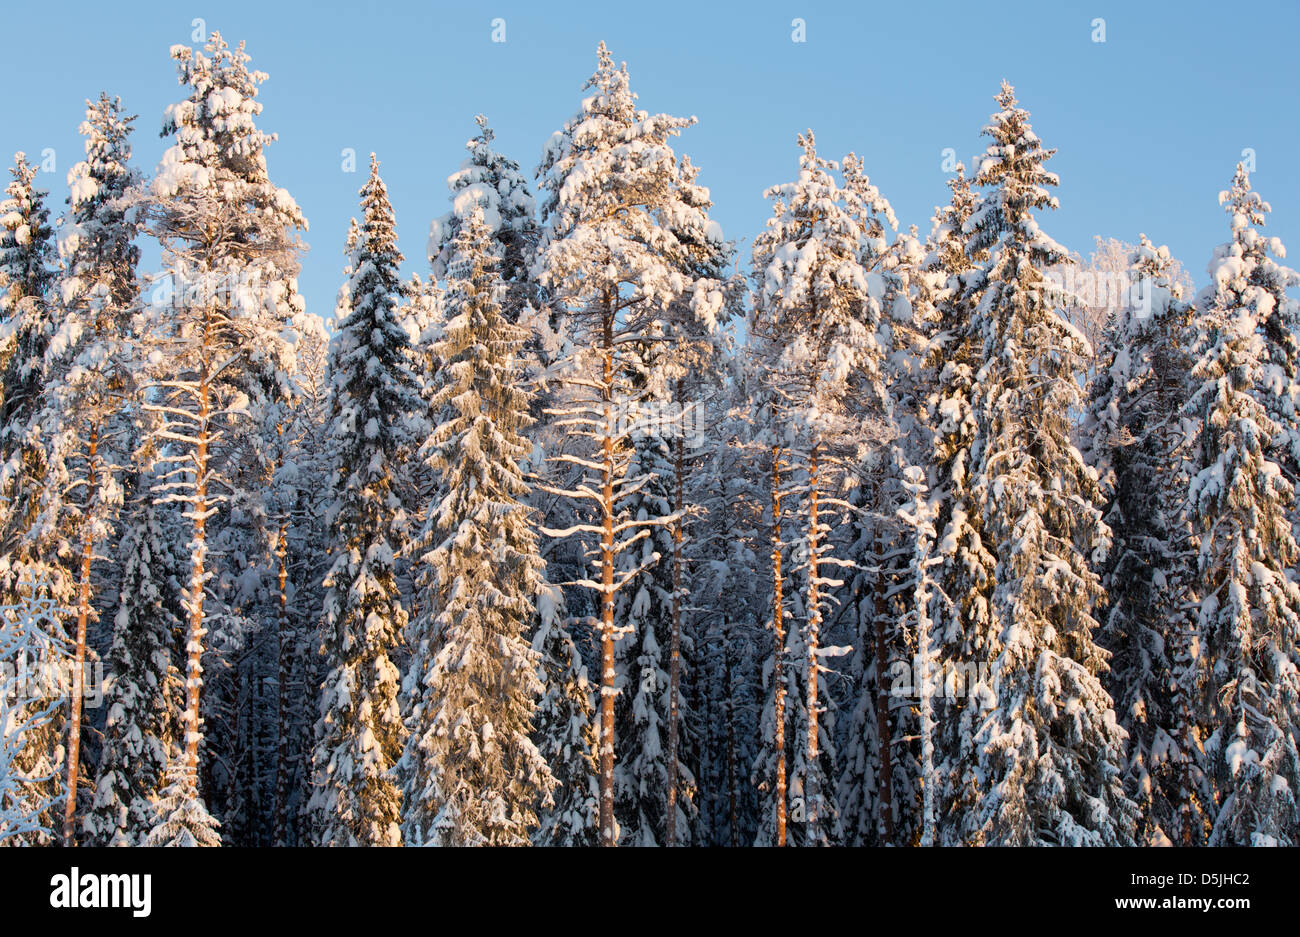 Mixed conifers forest with pine ( pinus sylvestris ) and spruce ( picea abies ) trees , Finland - Stock Image